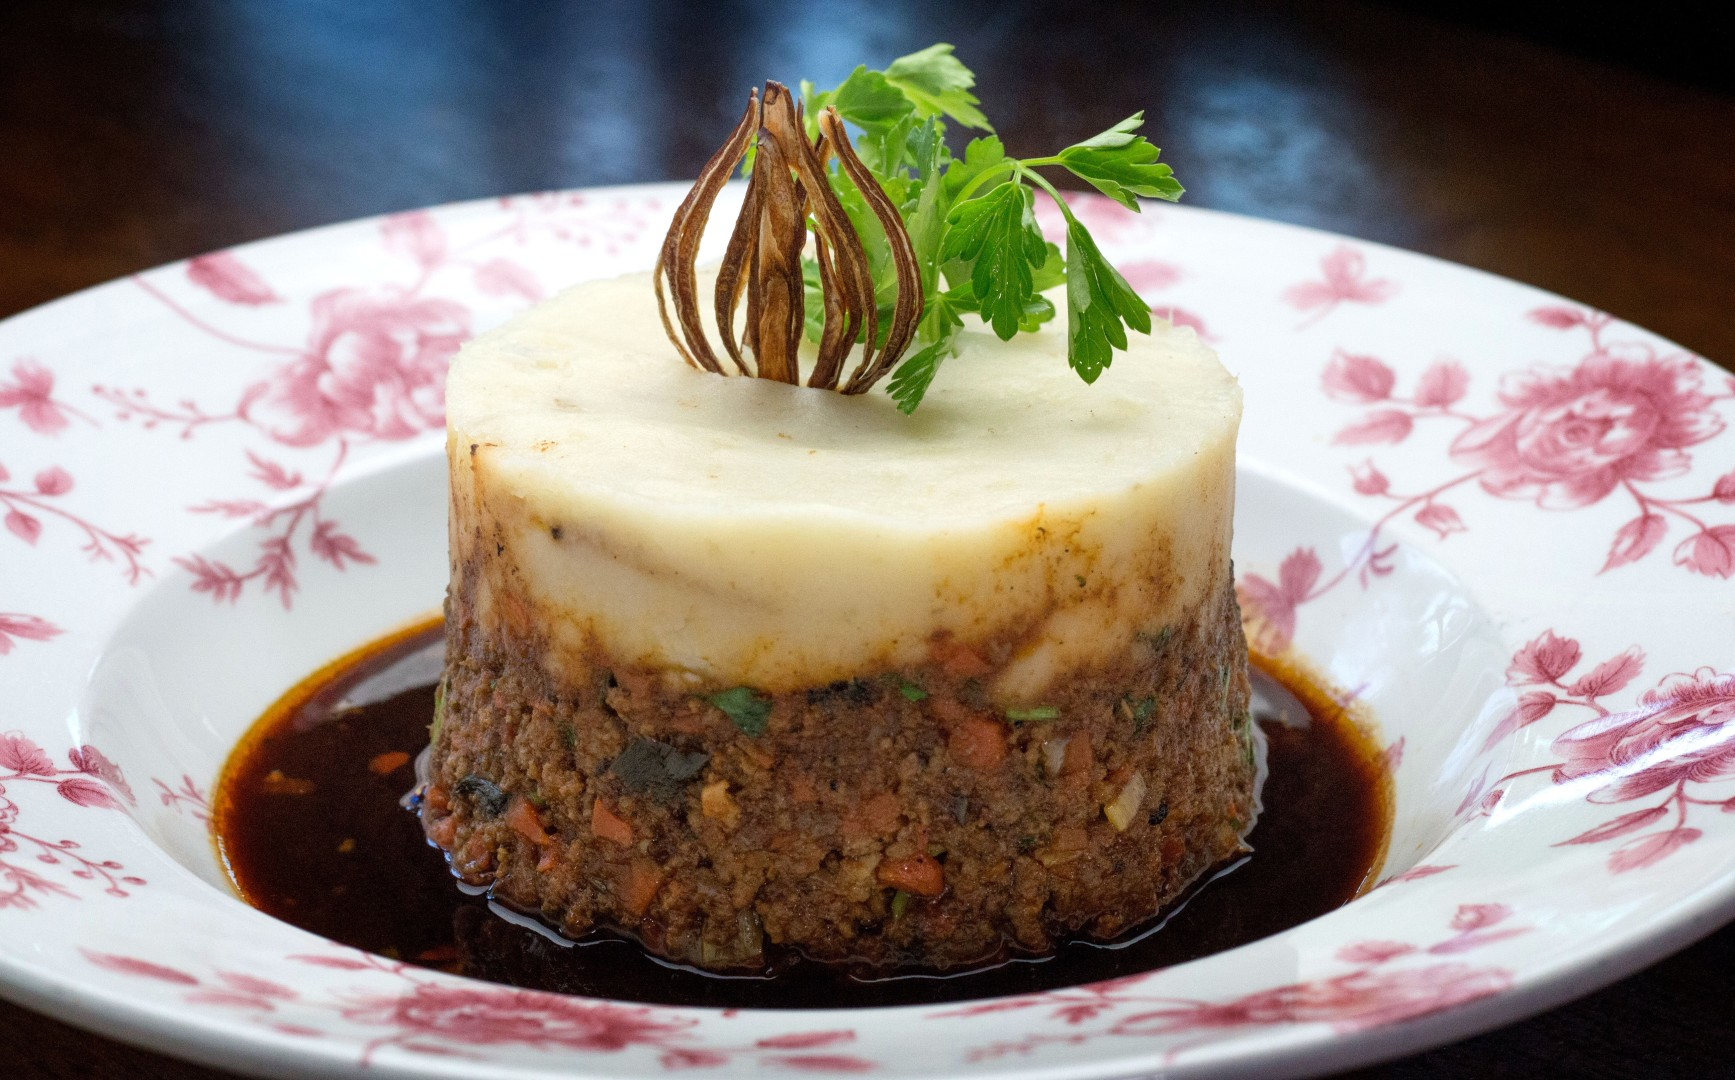 Keen eye for the shepherd's pie, as served at Raglan Road Irish Pub at Disney Springs in Lake Buena Vista, FL.